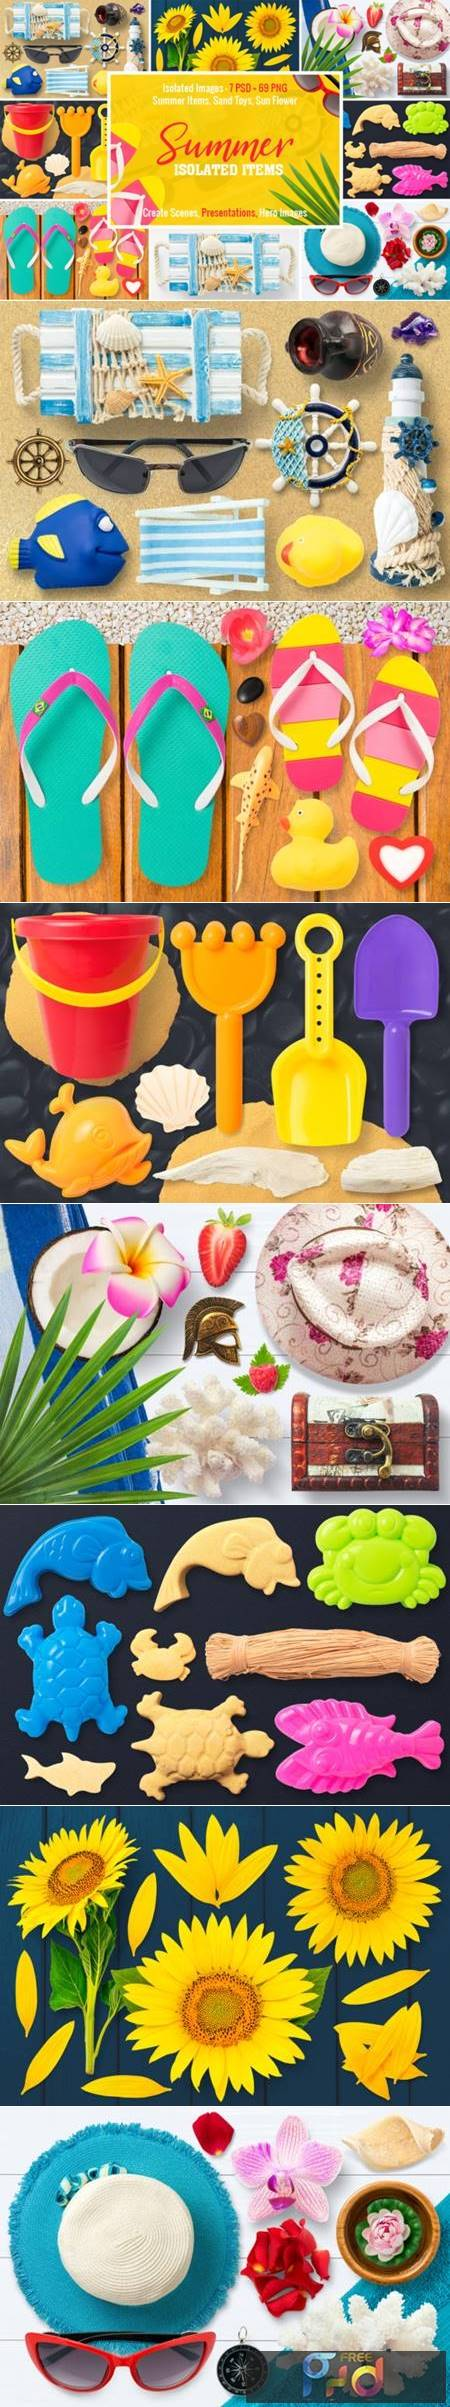 Isolated Summer Items 4264444 1